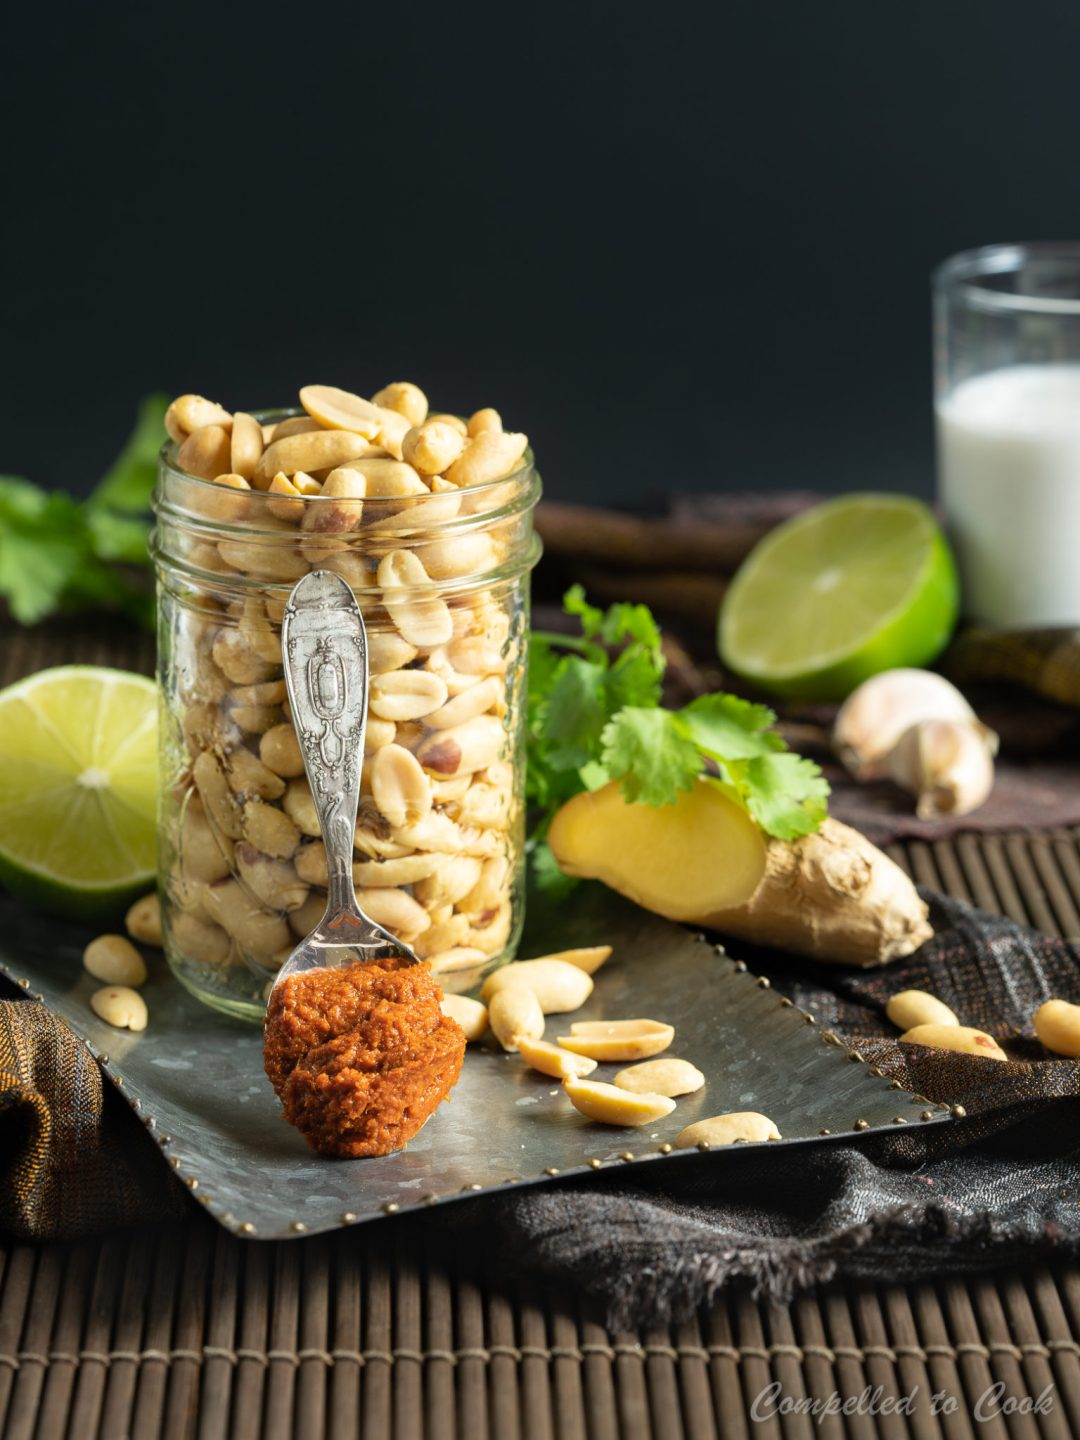 Whole peanuts fill a mason jar that is surrounded by ginger, curry paste, garlic, lime and coconut milk in preparation for Peanut Sauce.